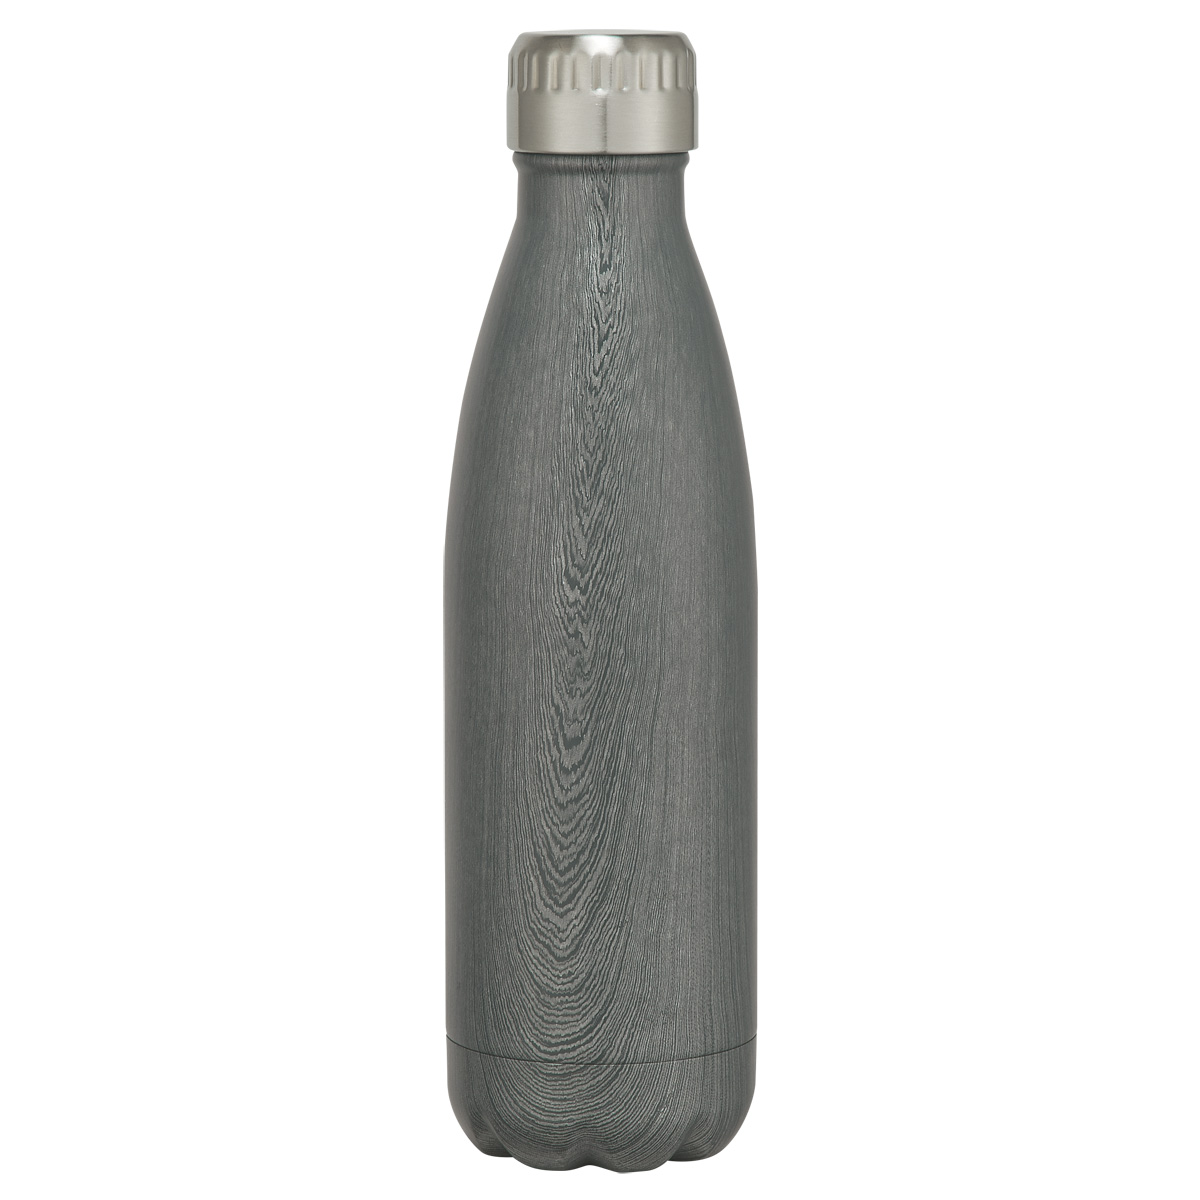 #CM 5736 - 16 Oz. Swig Stainless Steel Woodtone Bottle